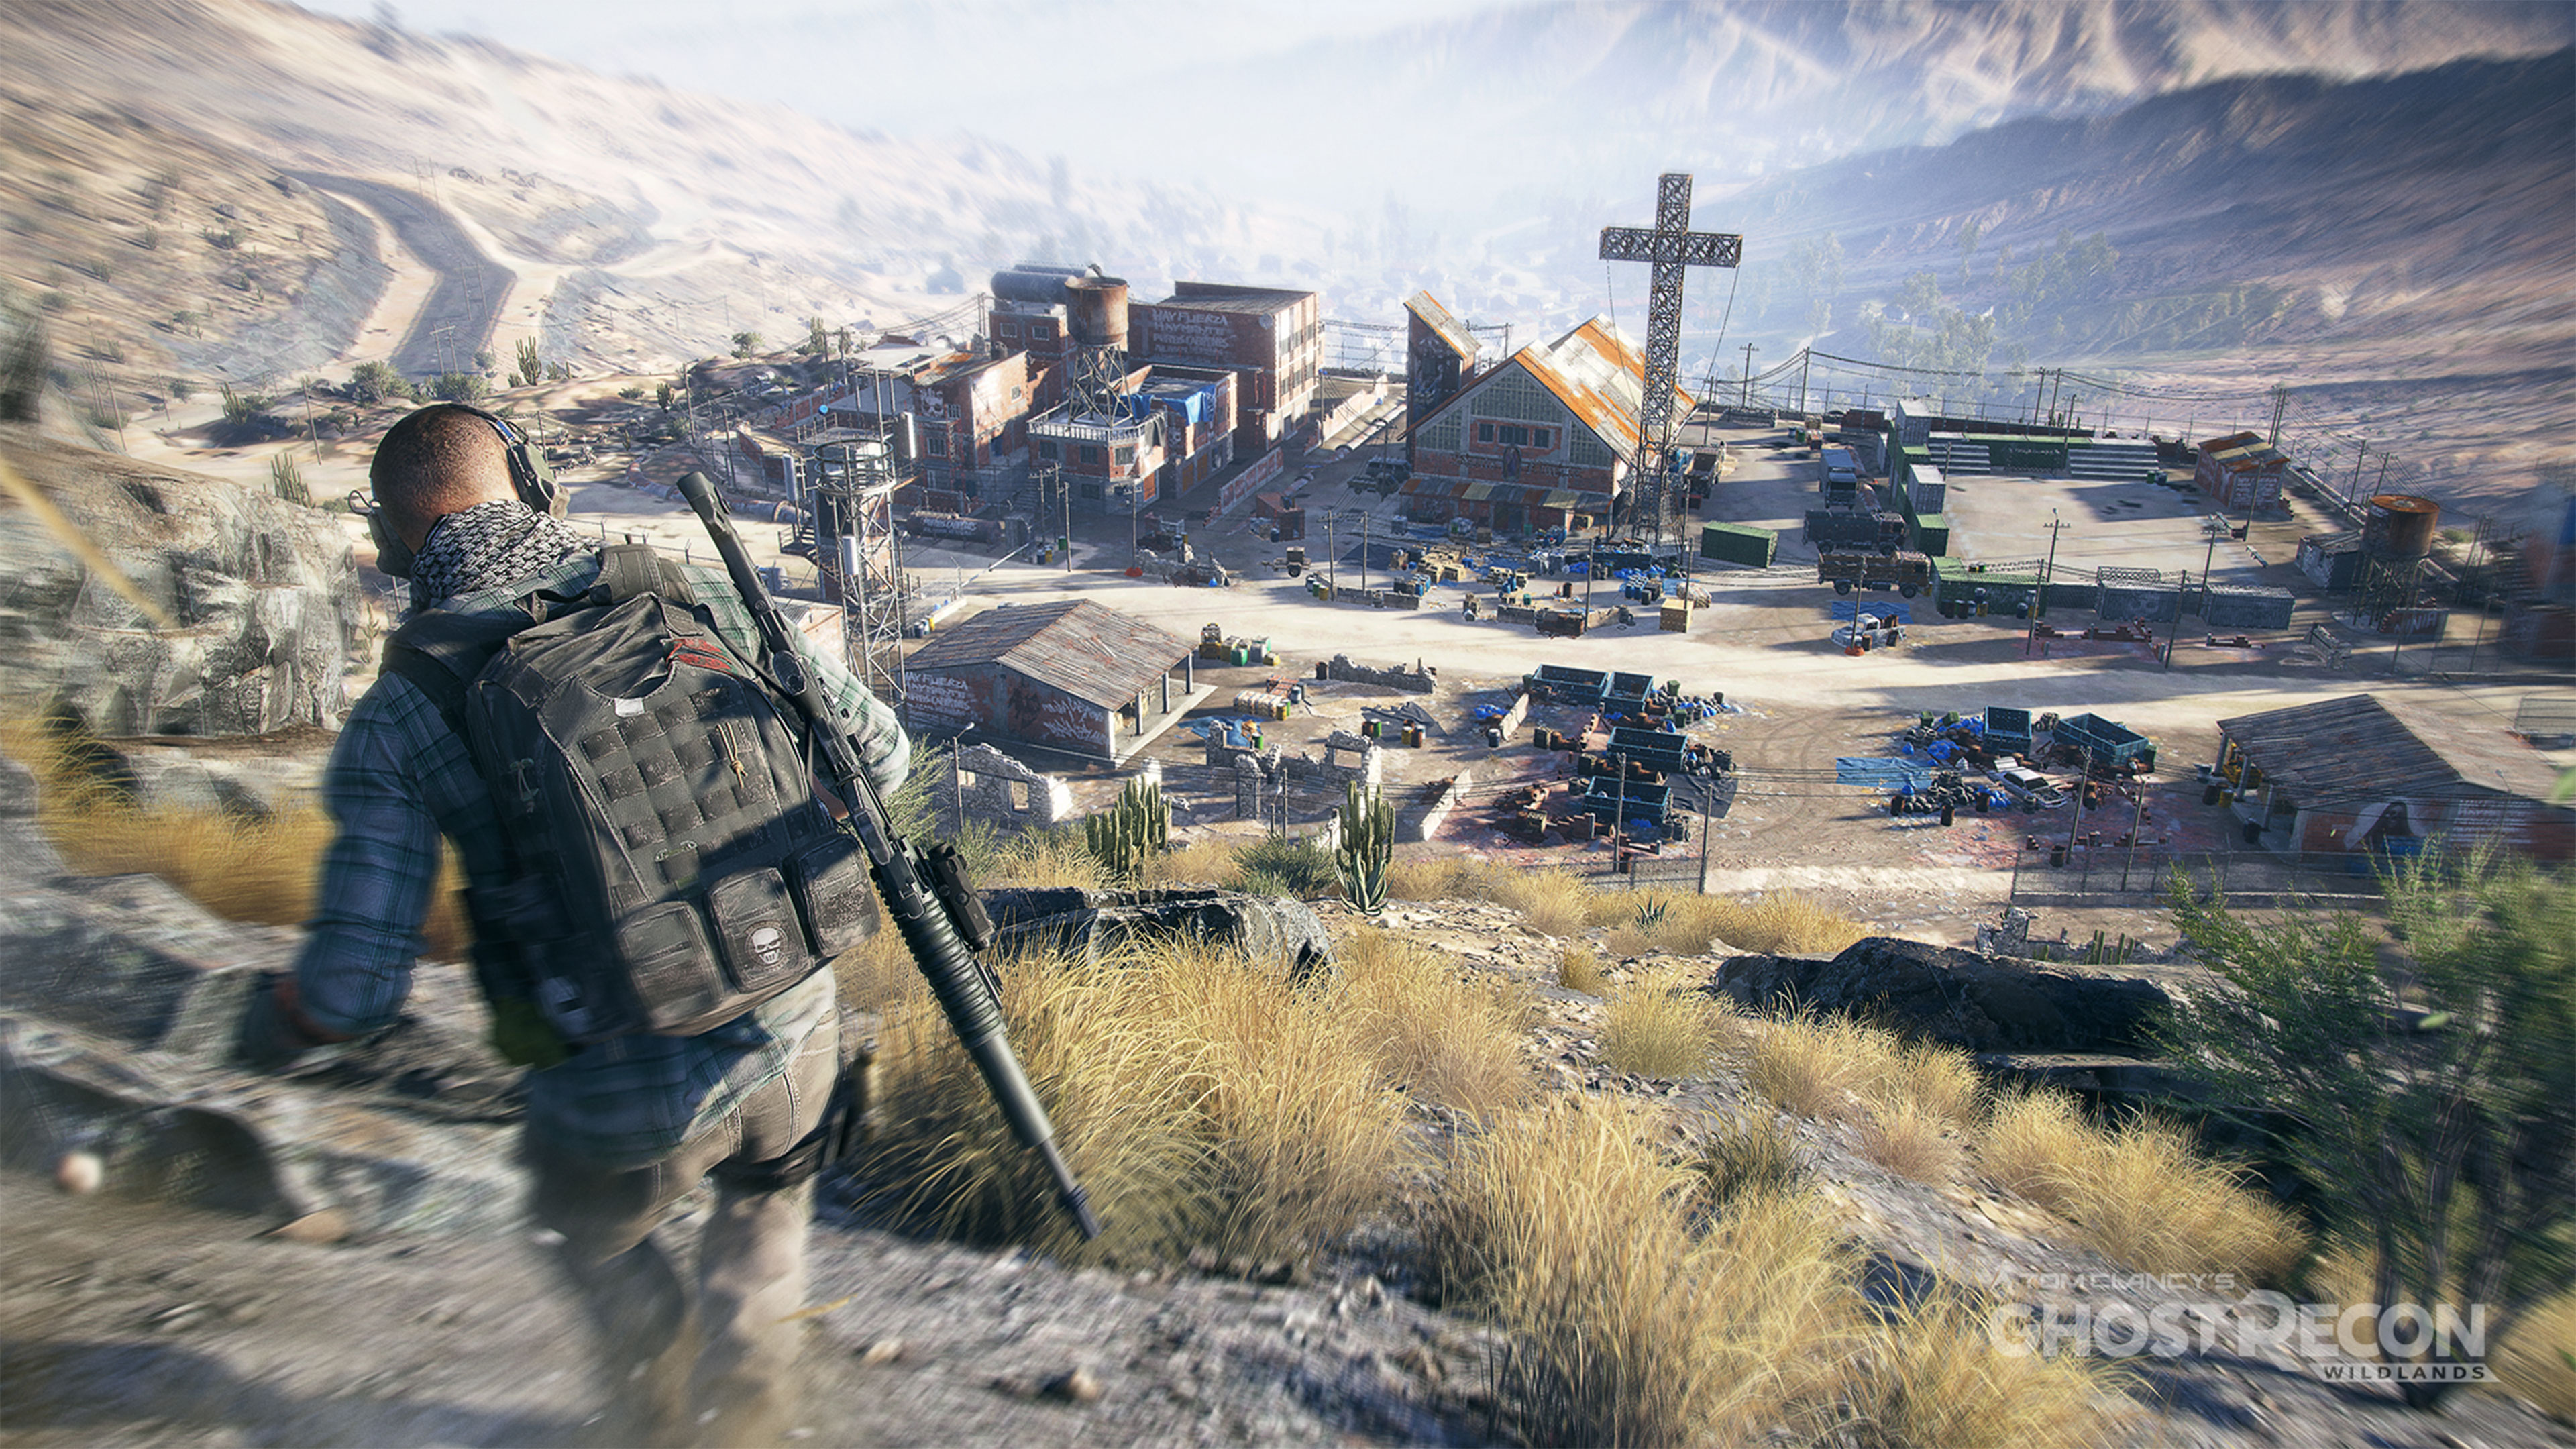 Tom Clancys Ghost Recon Wildlands Ghosts Wallpapers: Tom Clancy's Ghost Recon Wildlands Wallpapers In Ultra HD